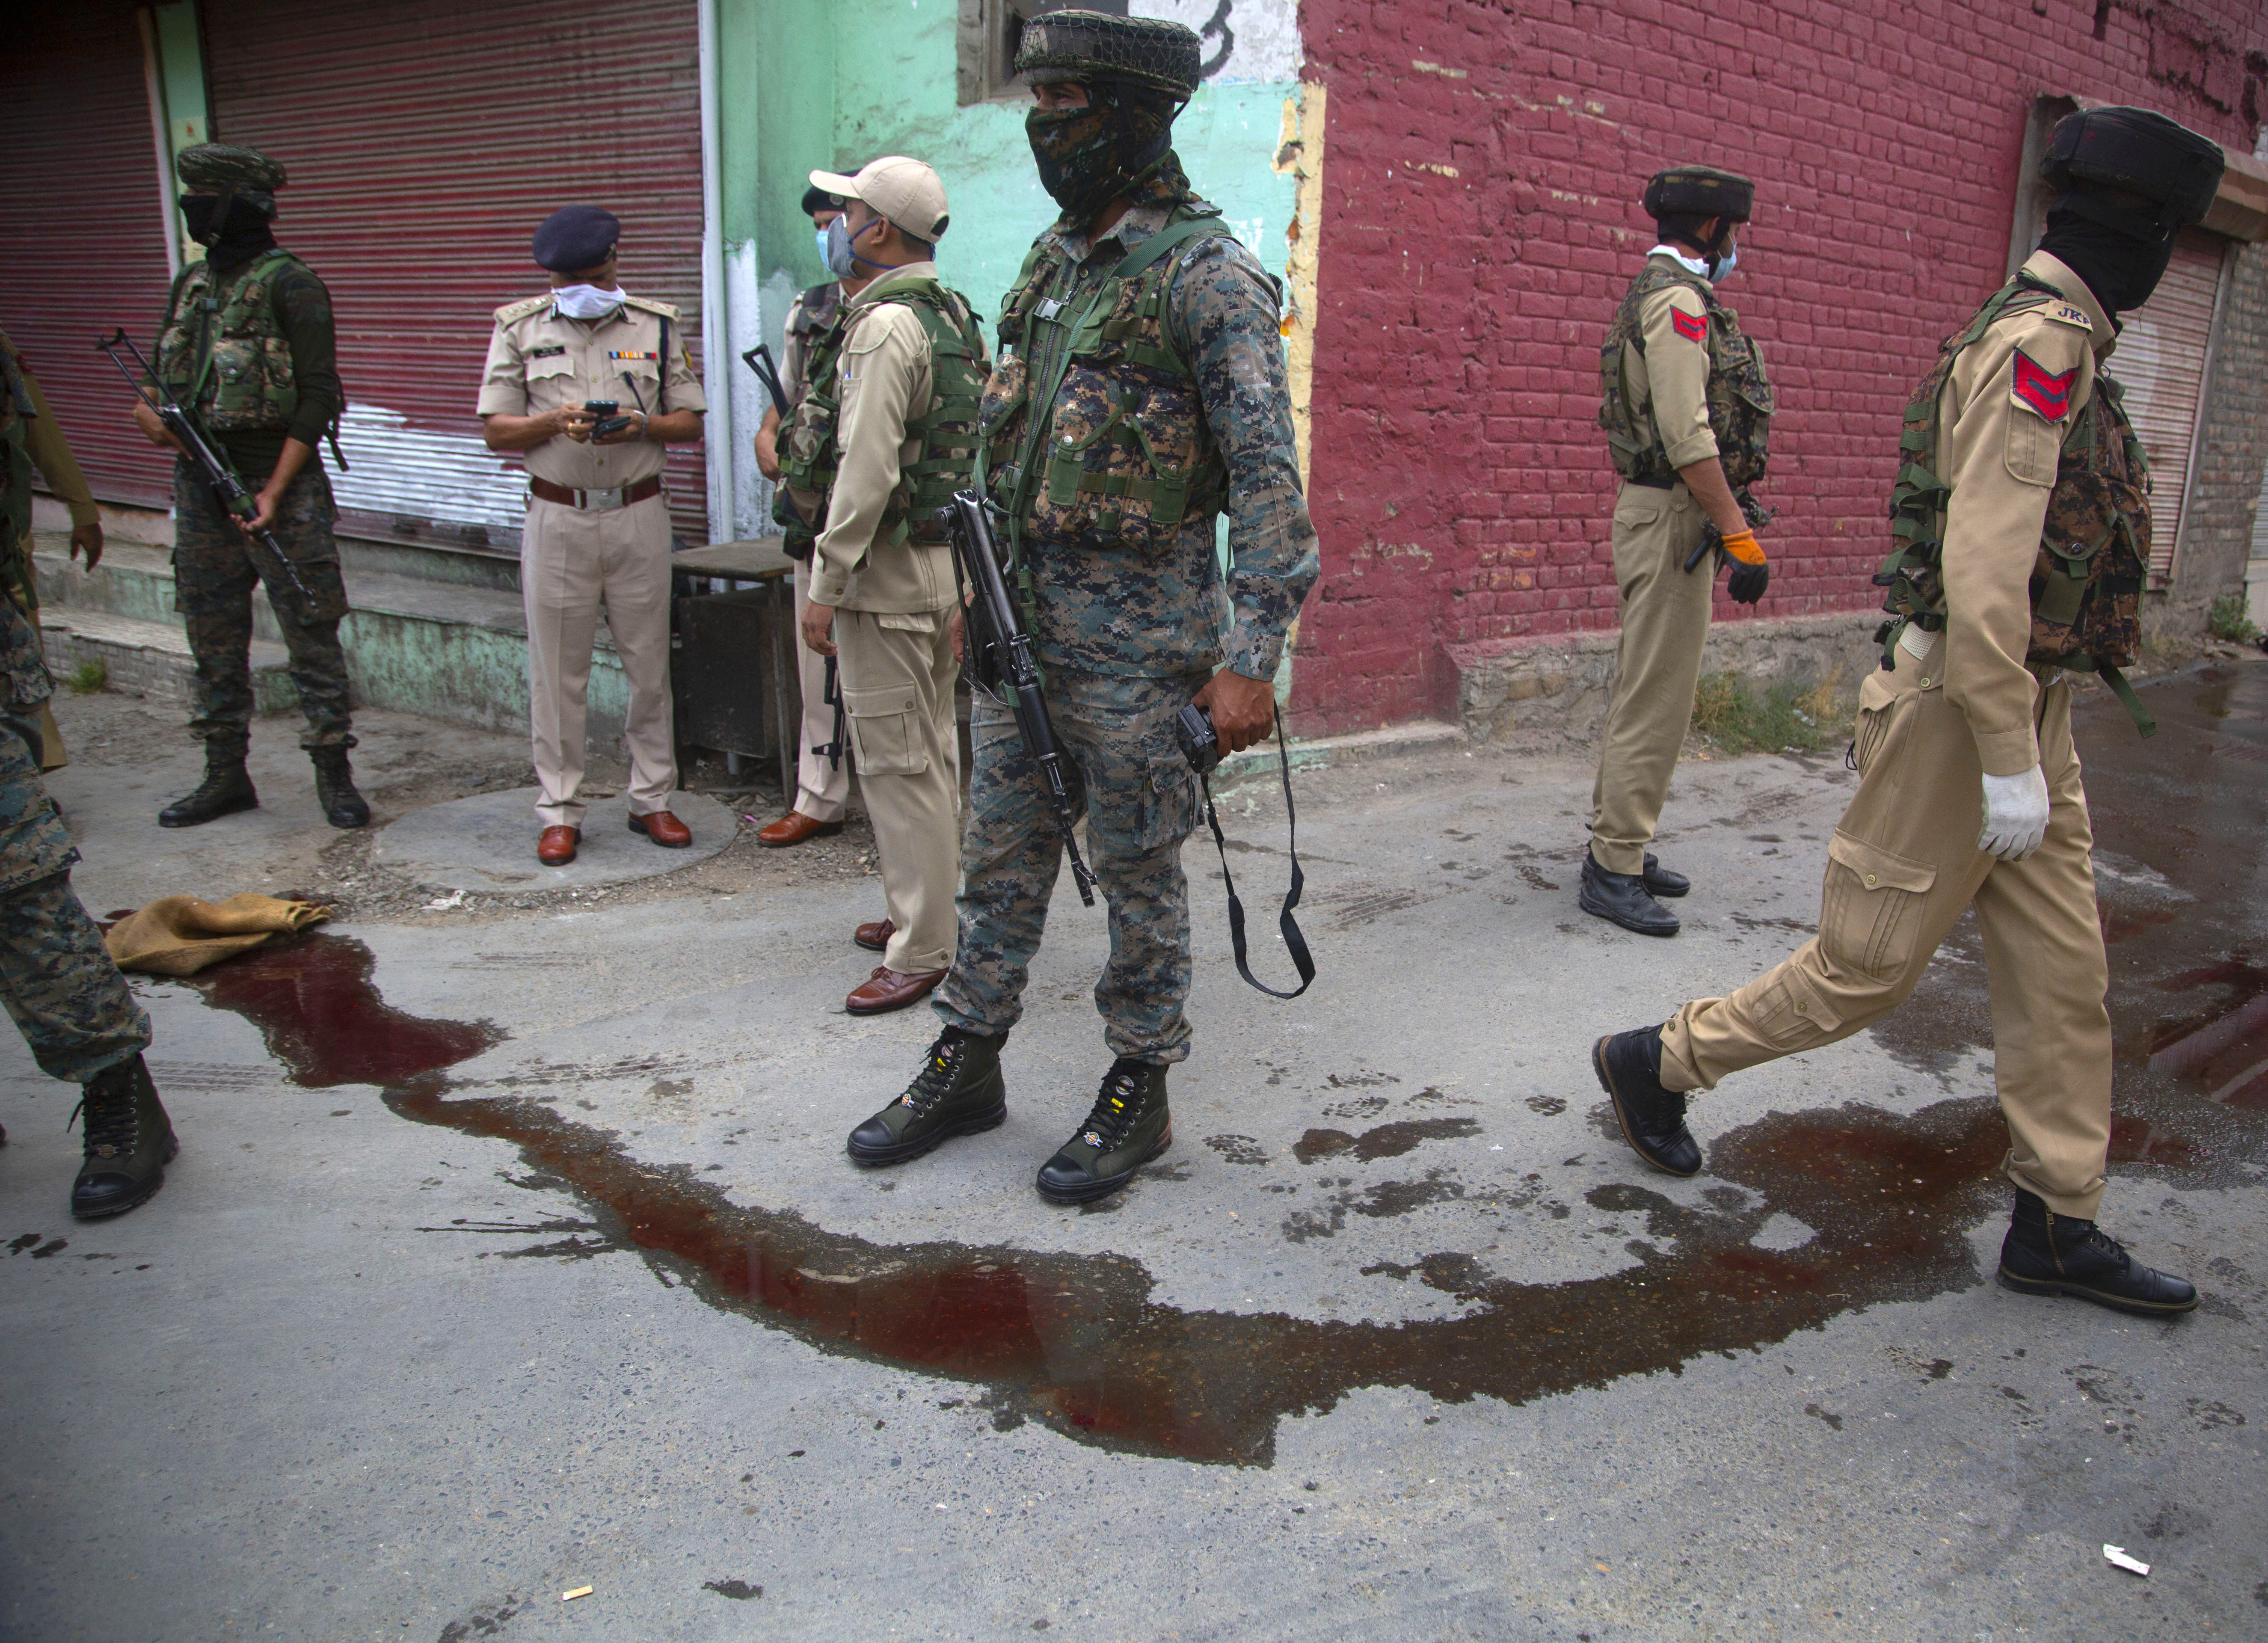 Indian policemen secure the area after suspected rebels attack on policemen on the outskirts of Srinagar, Indian controlled Kashmir, Friday, Aug. 14, 2020. Anti-India rebels in Indian-controlled Kashmir Friday attacked a police party in the disputed region's main city, killing two police officials and injuring another, police said. (AP Photo/Mukhtar Khan)